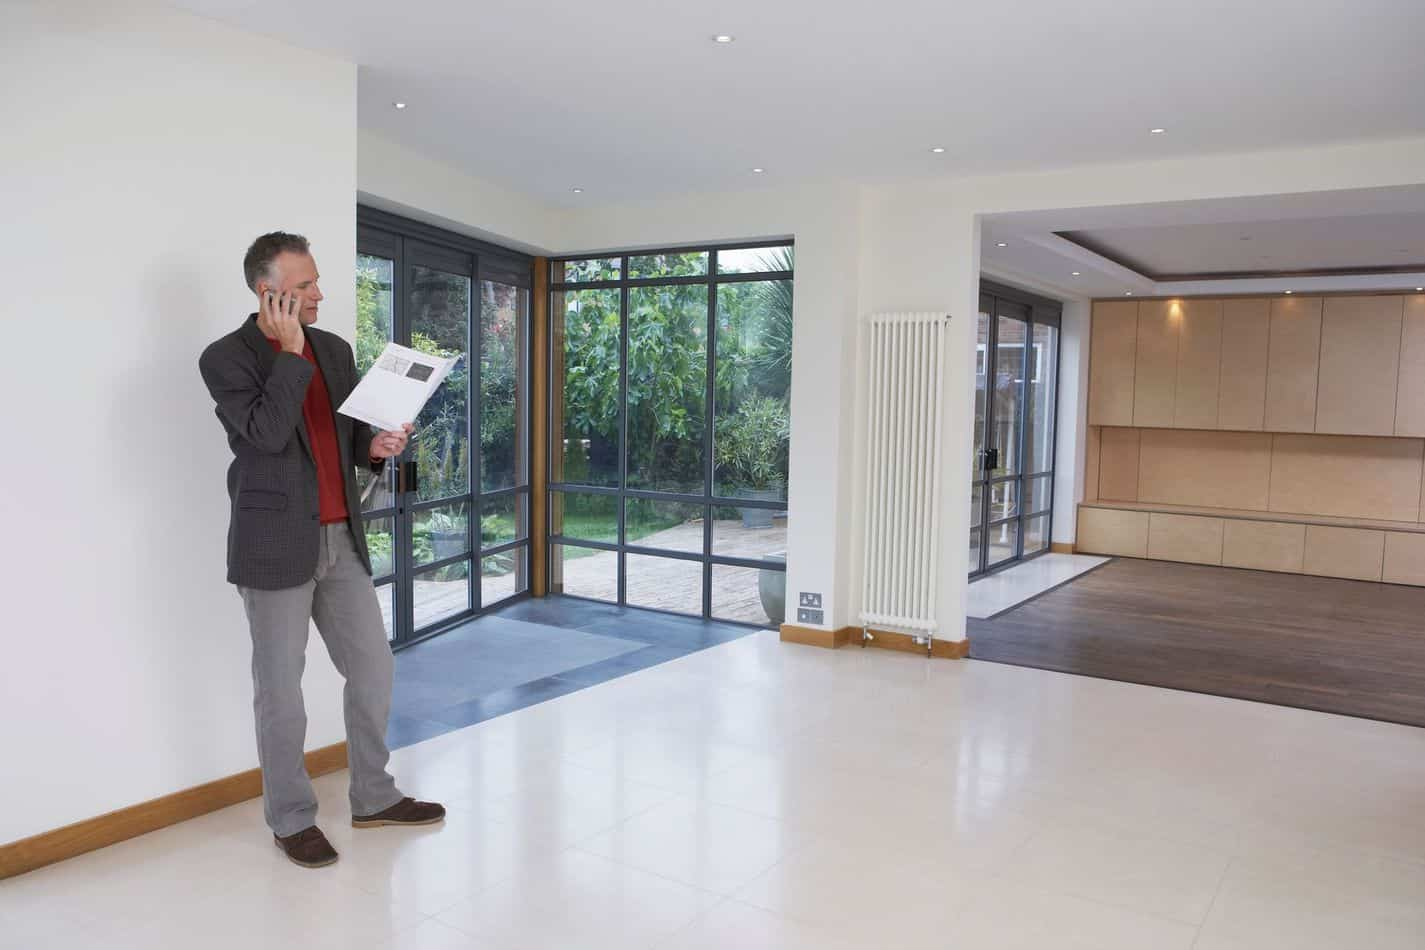 Real Estate Agent Using Mobile Phone In New Property